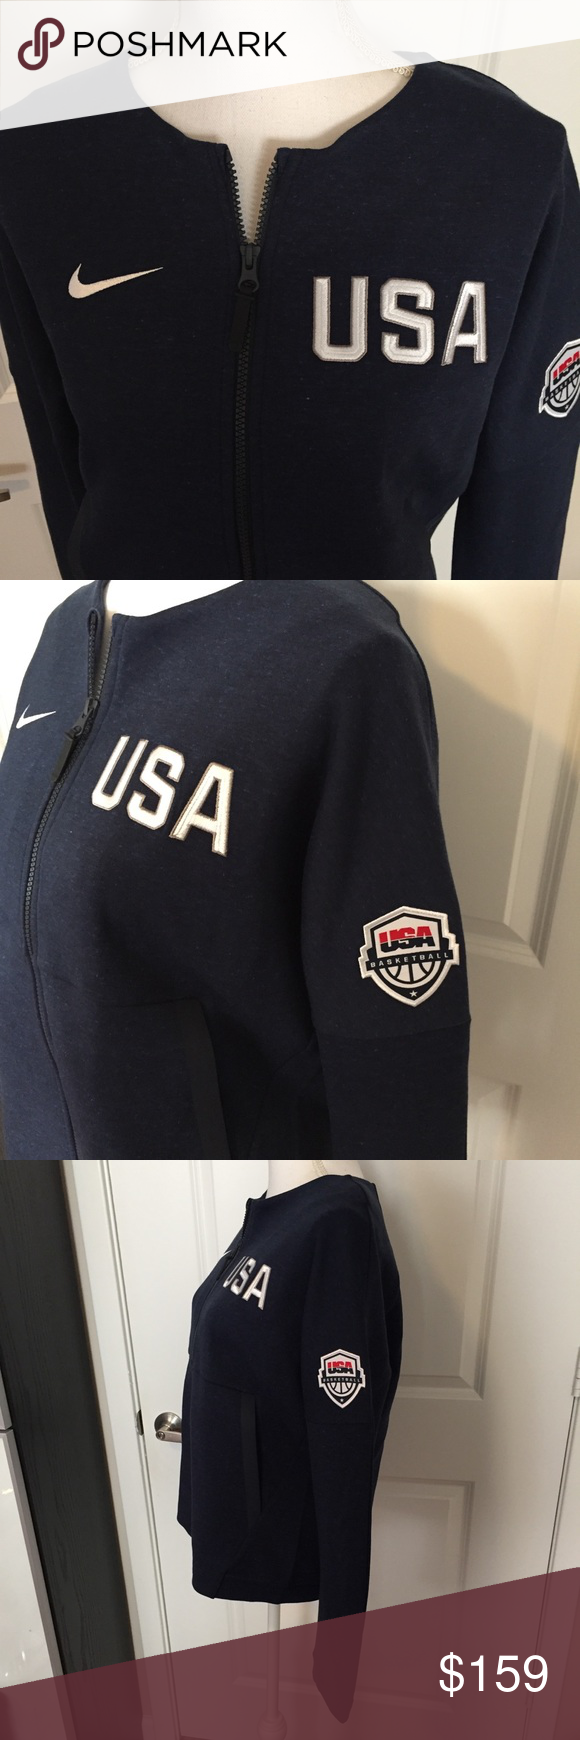 Nike Tech Fleece Team USA track jacket 🇺🇸 Women's Nike